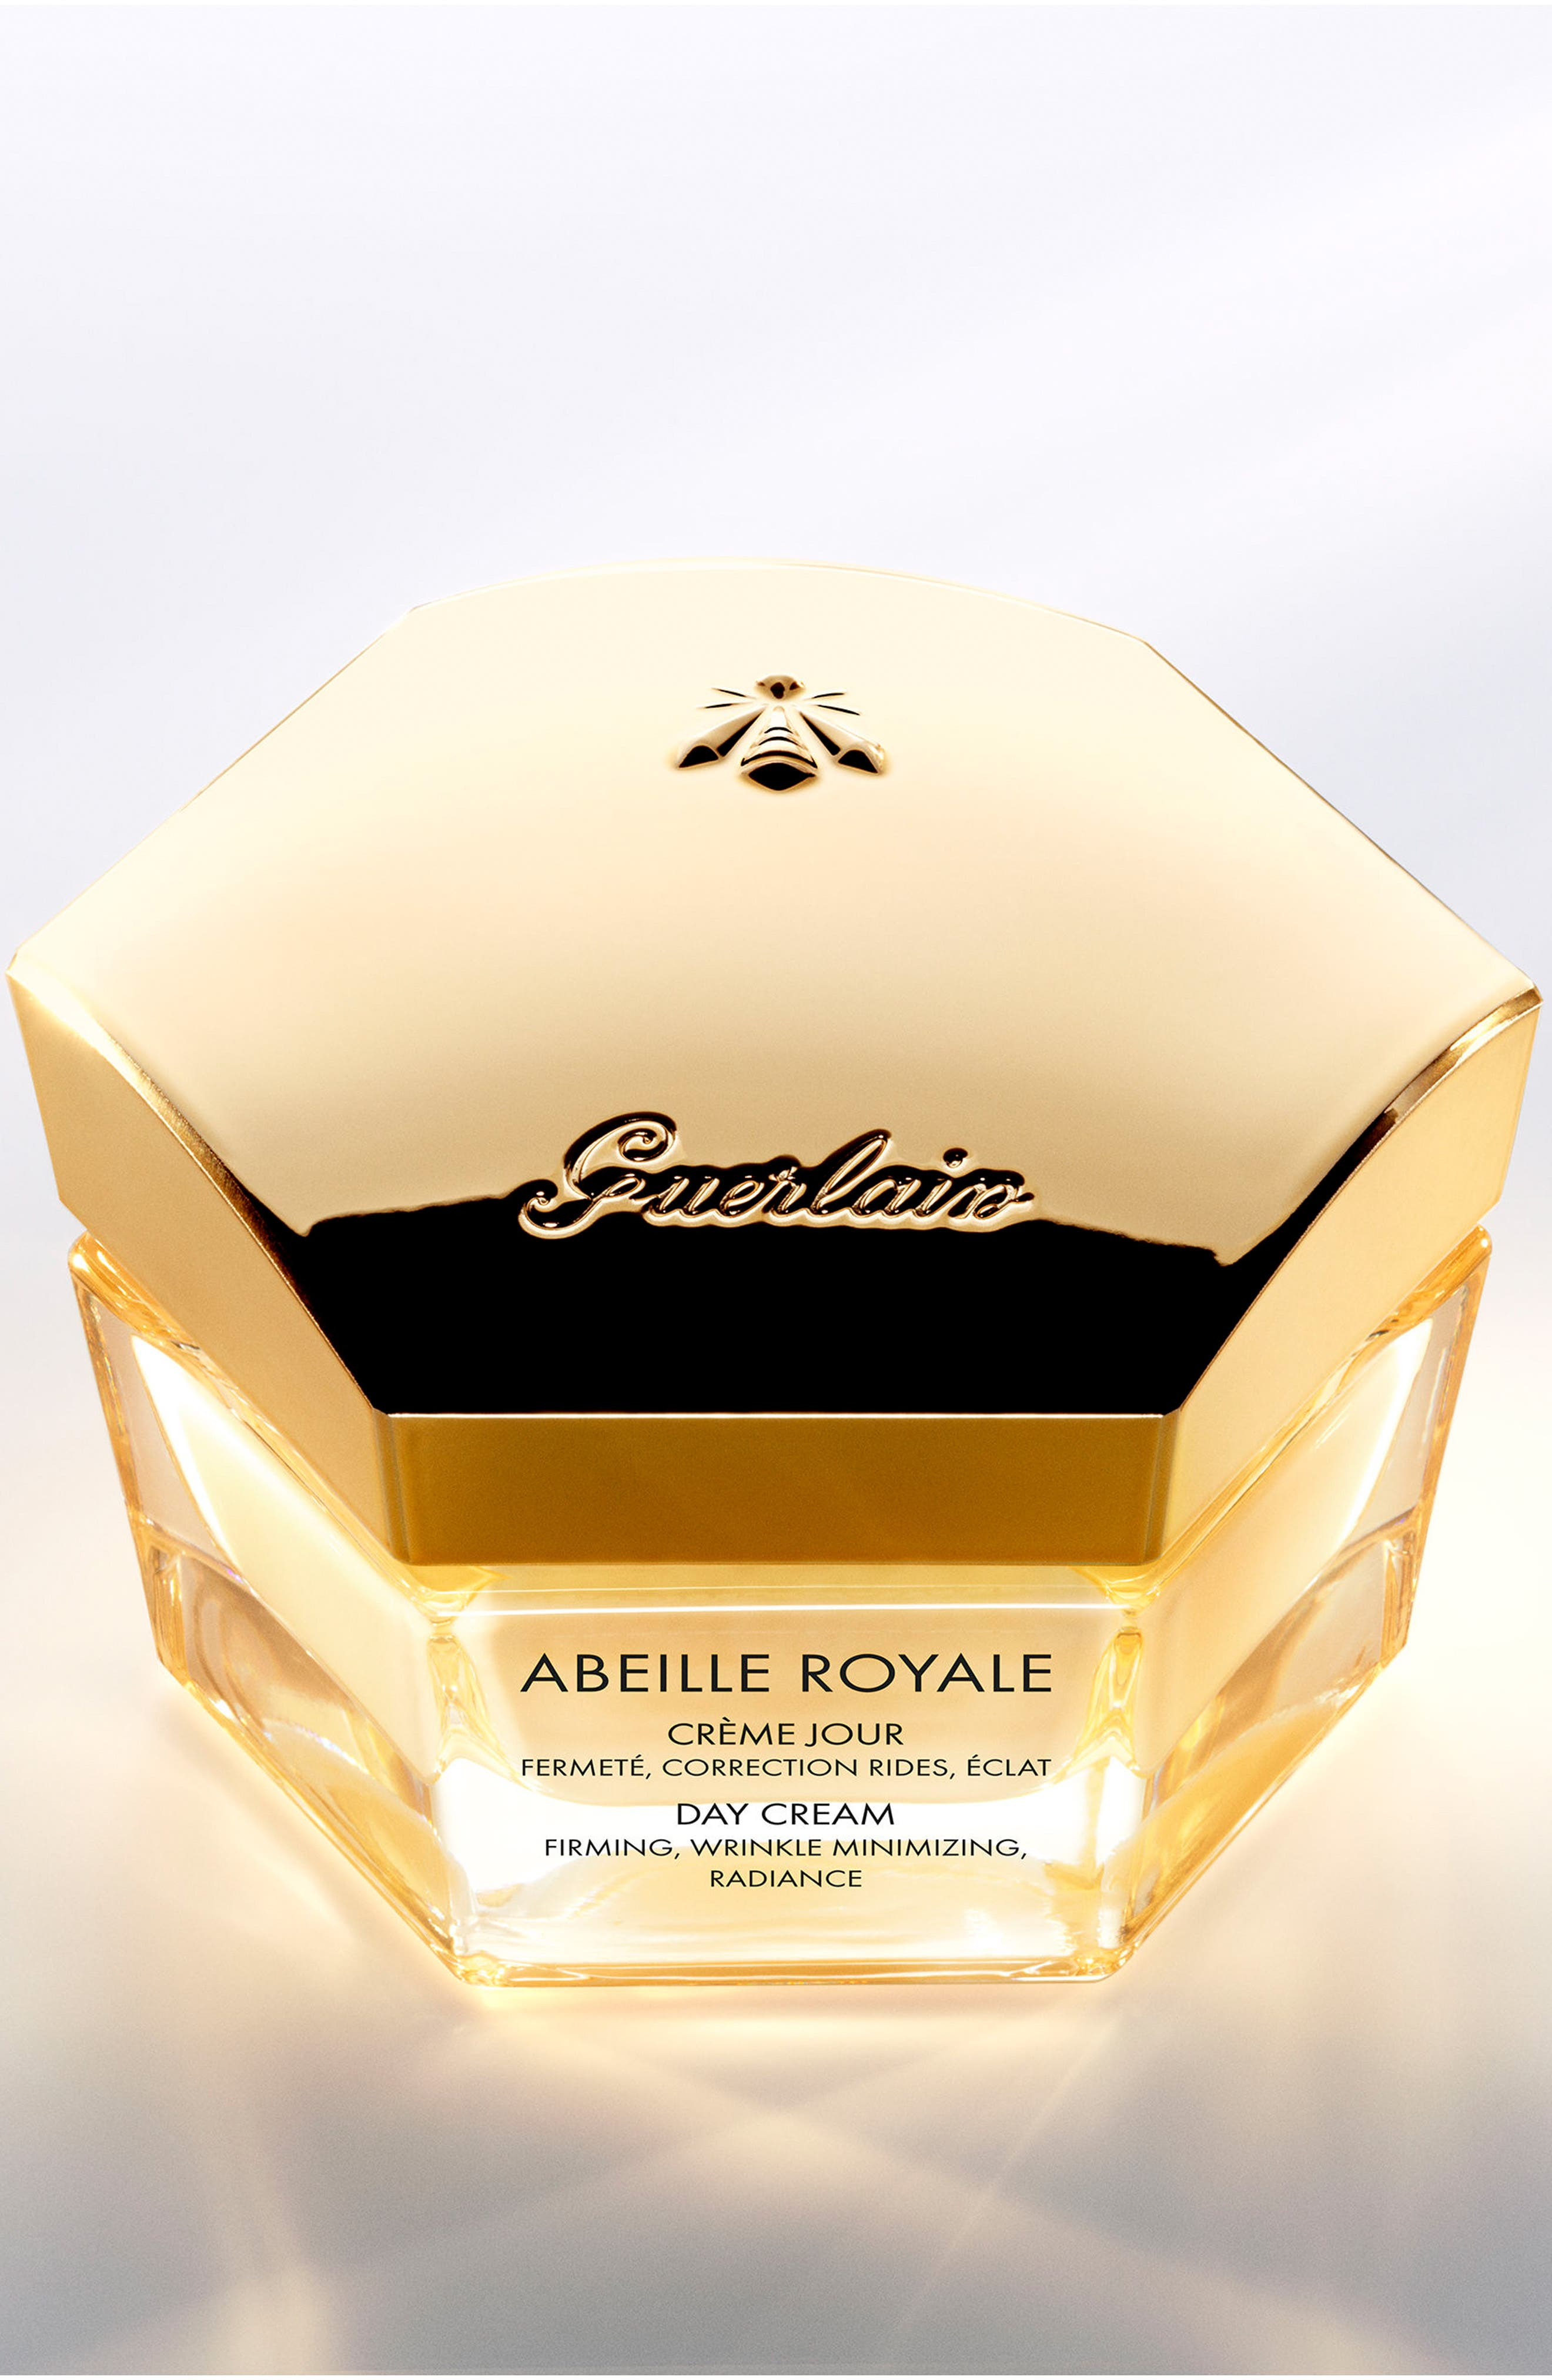 'Abeille Royale' Normal Day Cream,                             Alternate thumbnail 2, color,                             No Color